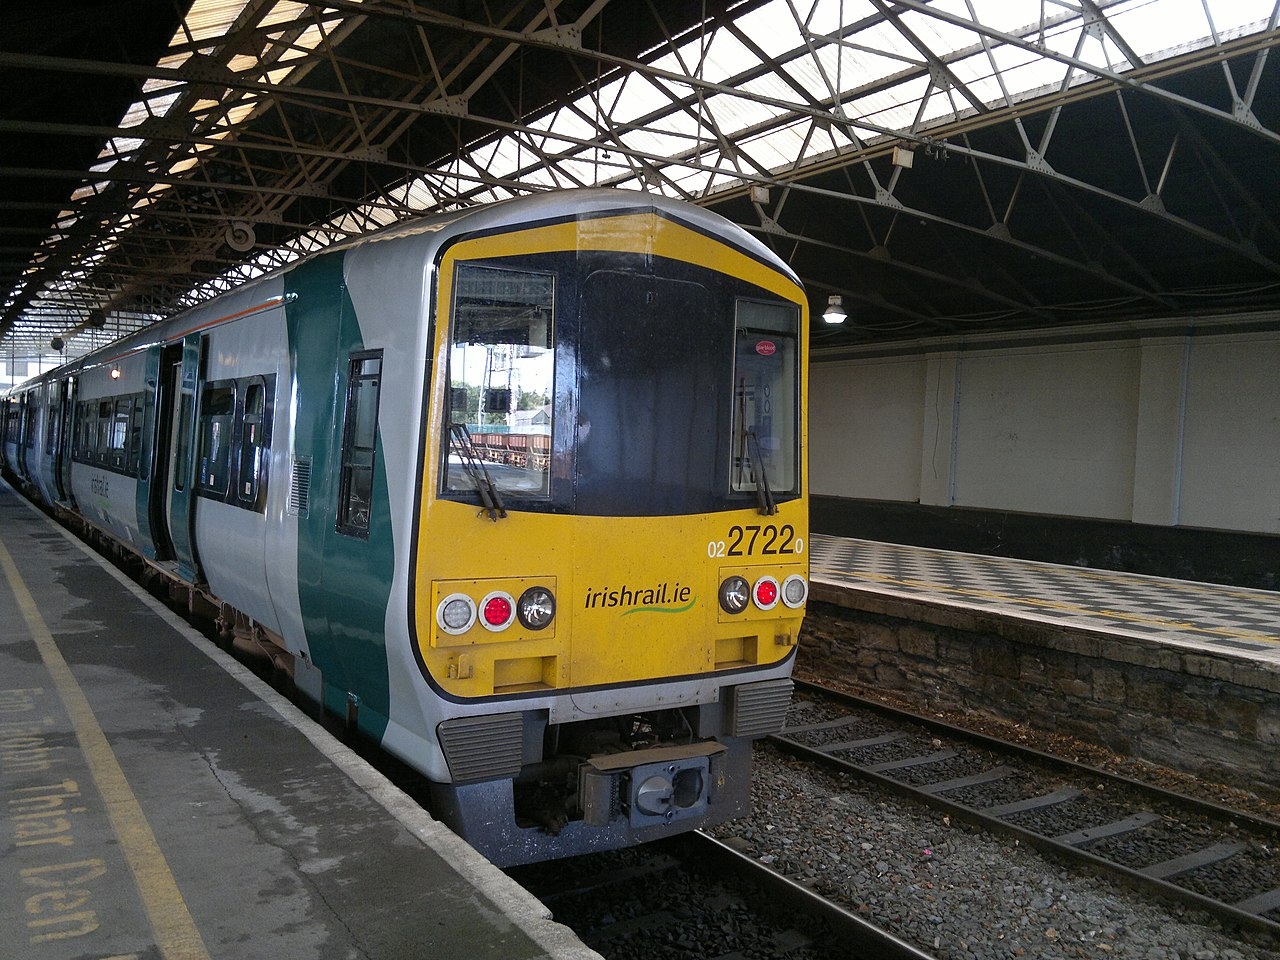 File:2722 irishrail.jpg